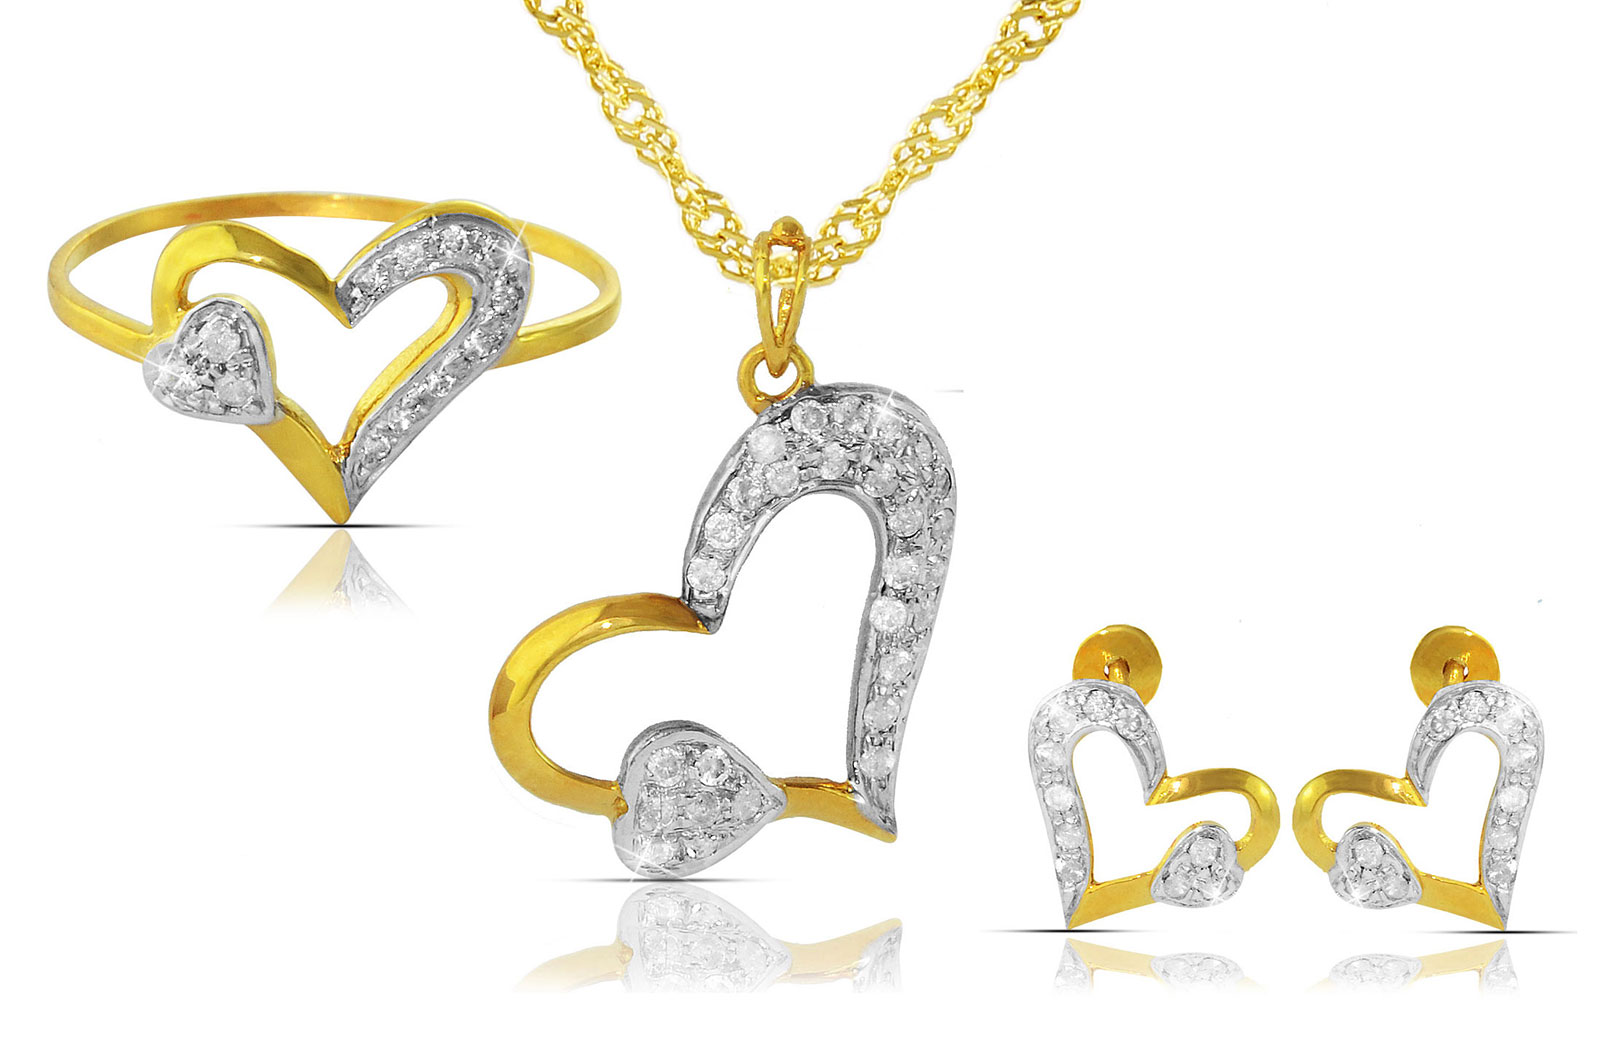 Vera Perla  18K Solid Yellow Gold 0.64Ct Genuine Diamonds  Big Heart Holds Small Heart Necklace, Earrings and Ring Set